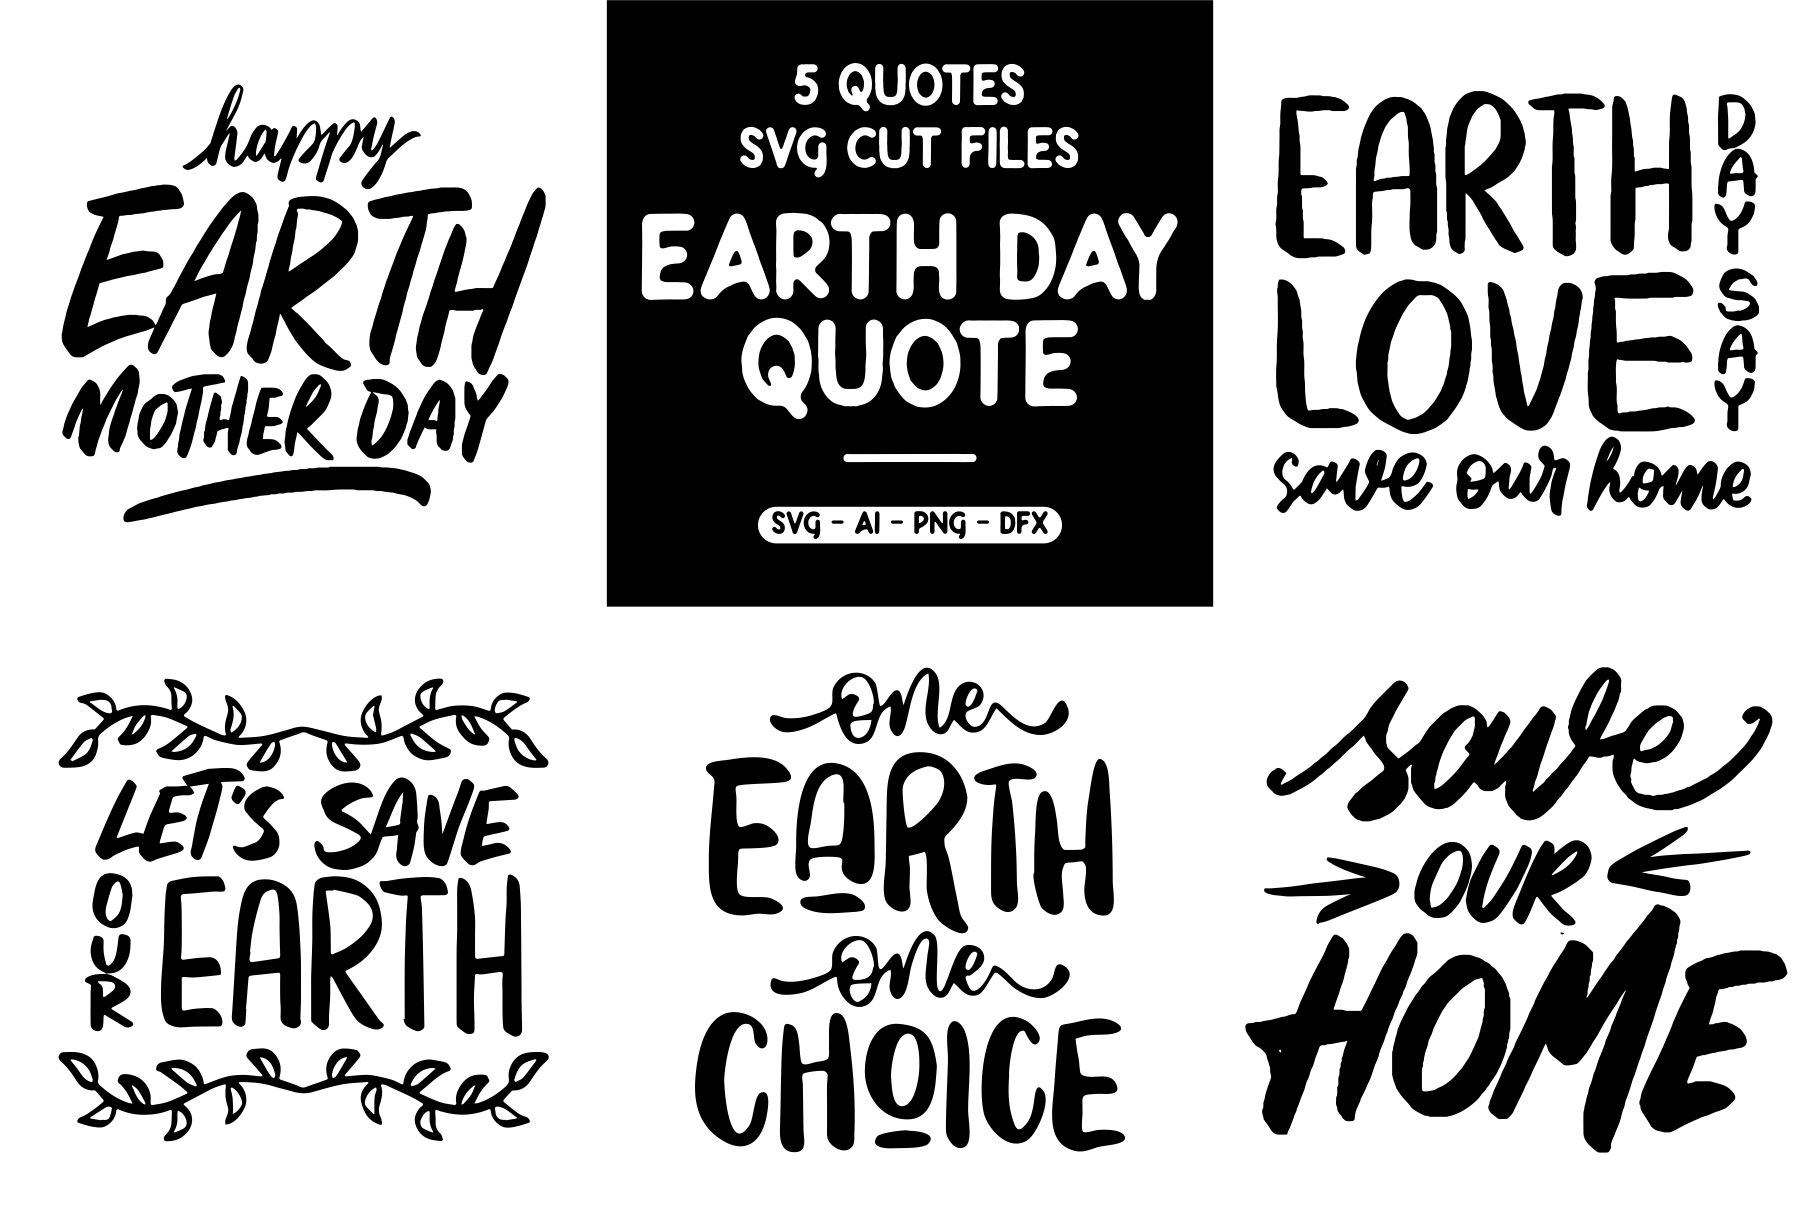 Download Free 5 Quotes Earth Day Graphic By Goodjavastudio Creative Fabrica for Cricut Explore, Silhouette and other cutting machines.